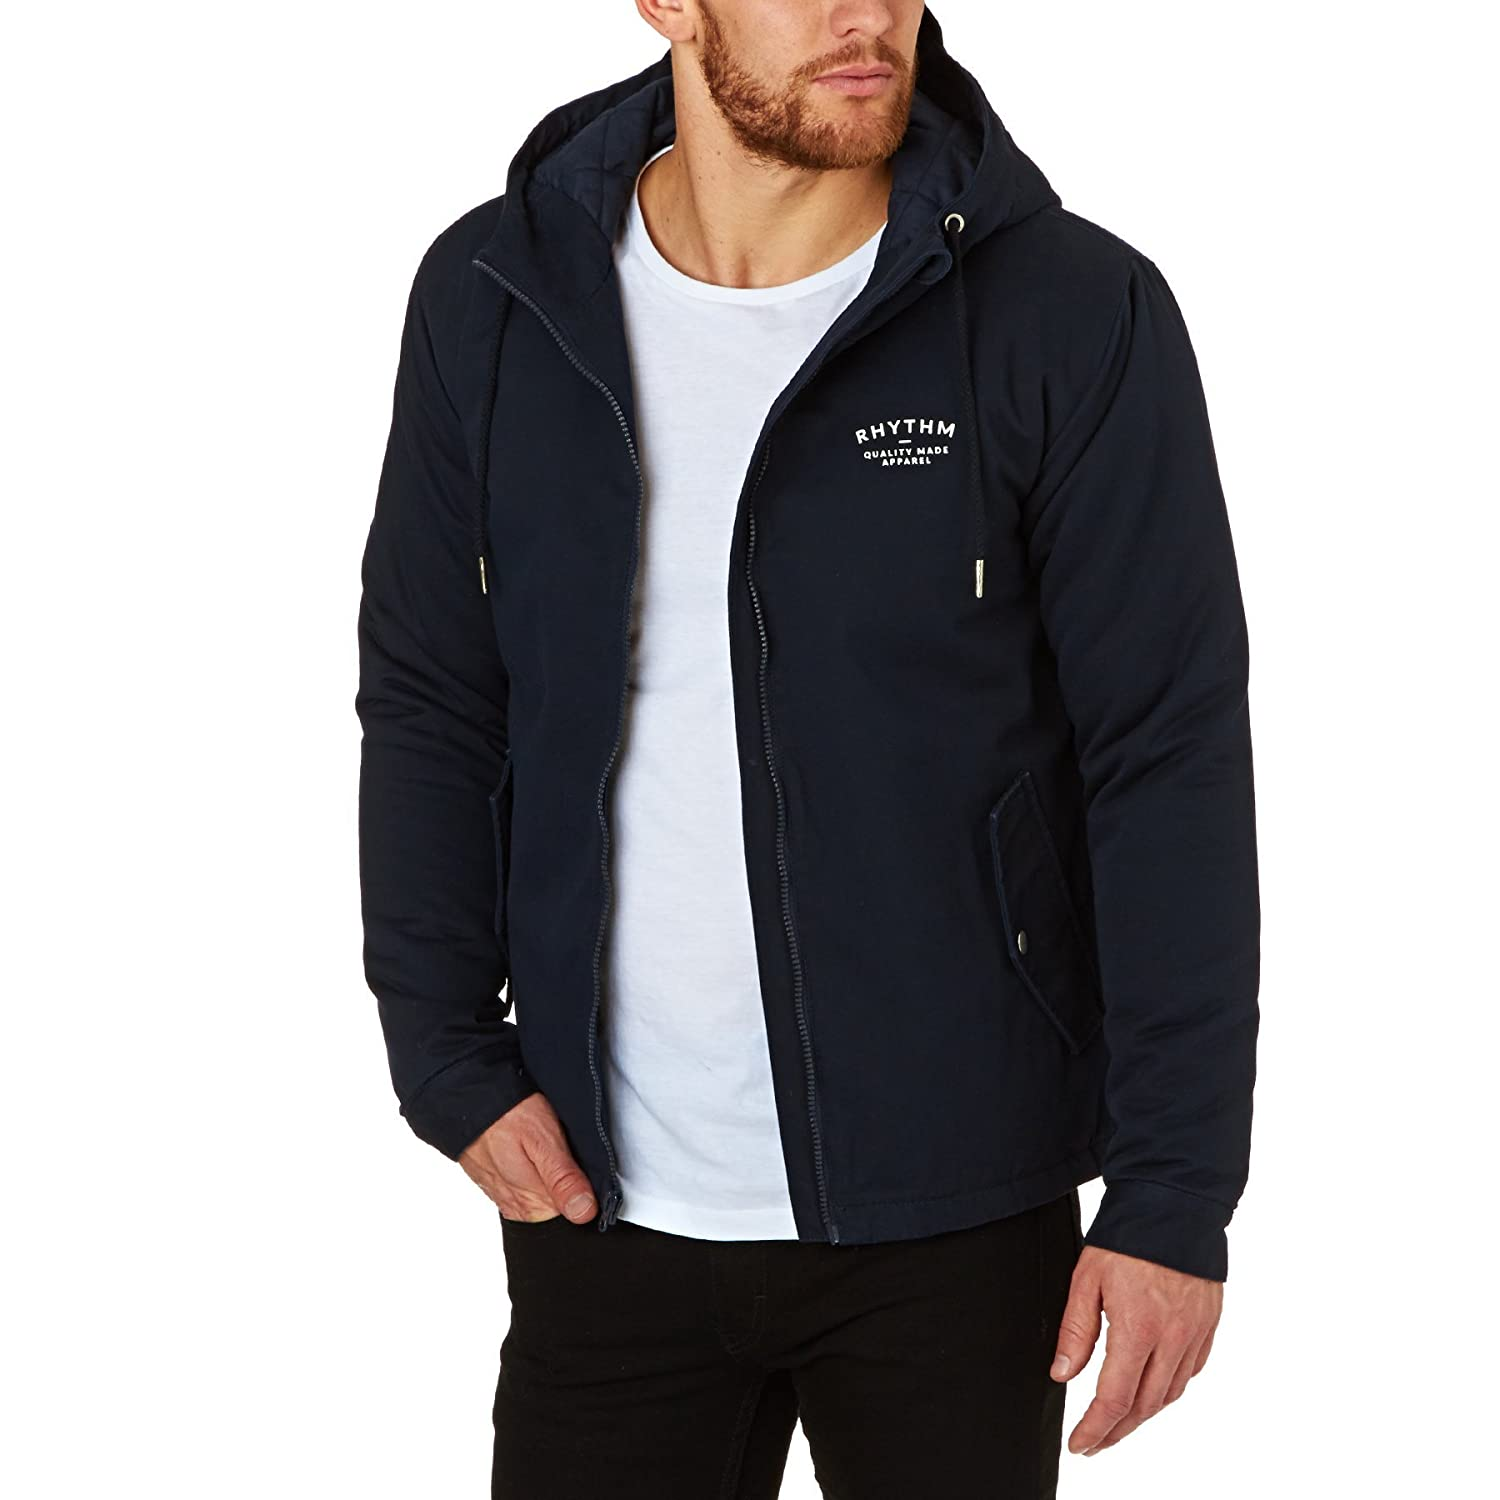 Rhythm Jackets - Rhythm Fleet Jacket - Navy